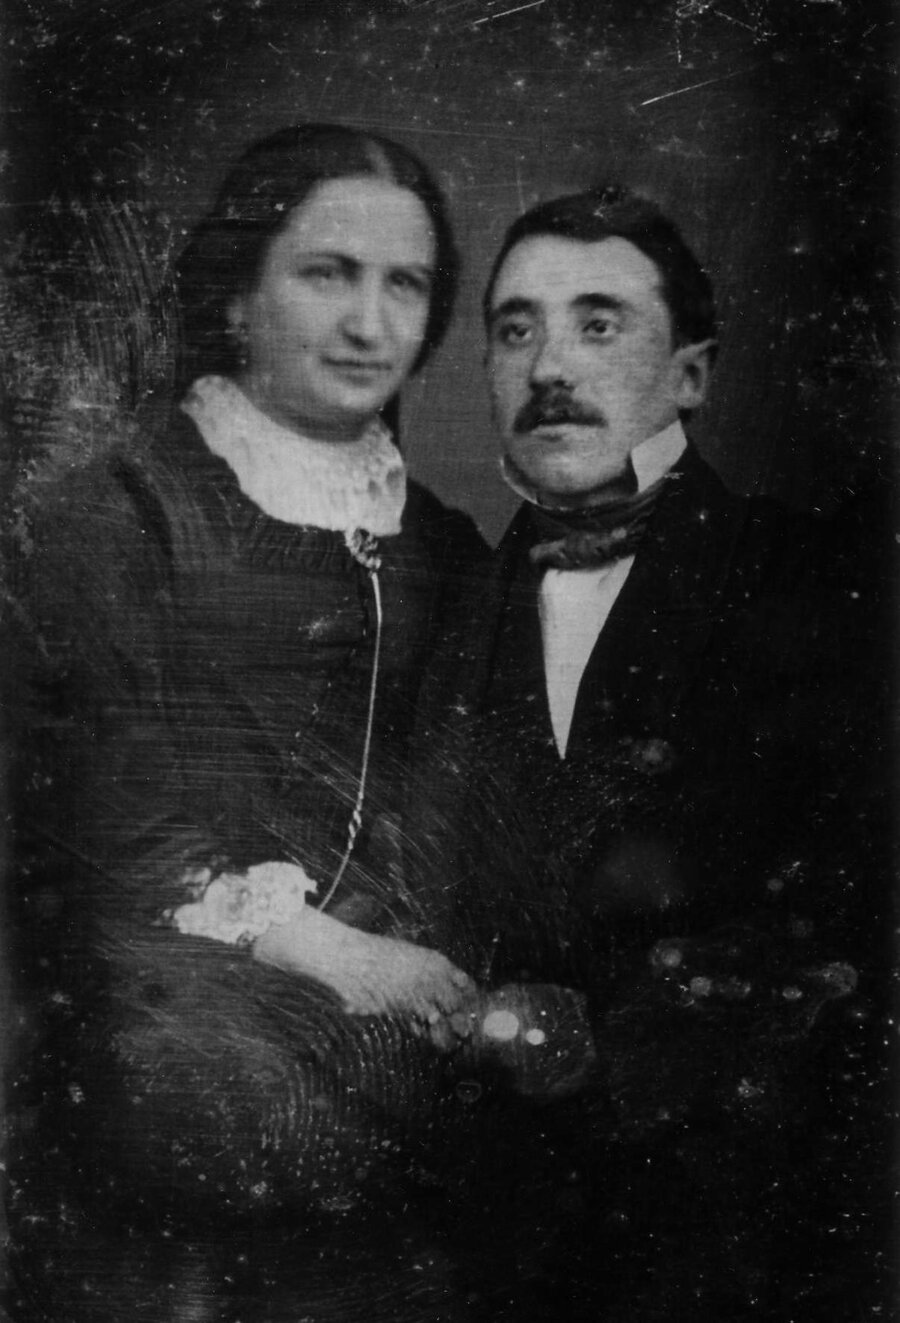 Johanna & Firmengründer Wolf Sultan, ©International Piano Archives, University of Maryland/USA.  Mit freundlicher Genehmigung von Moritz von Bredow.  Quelle: Moritz von Bredow: Rebellische Pianistin. Das Leben der Grete Sultan zwischen Berlin und New